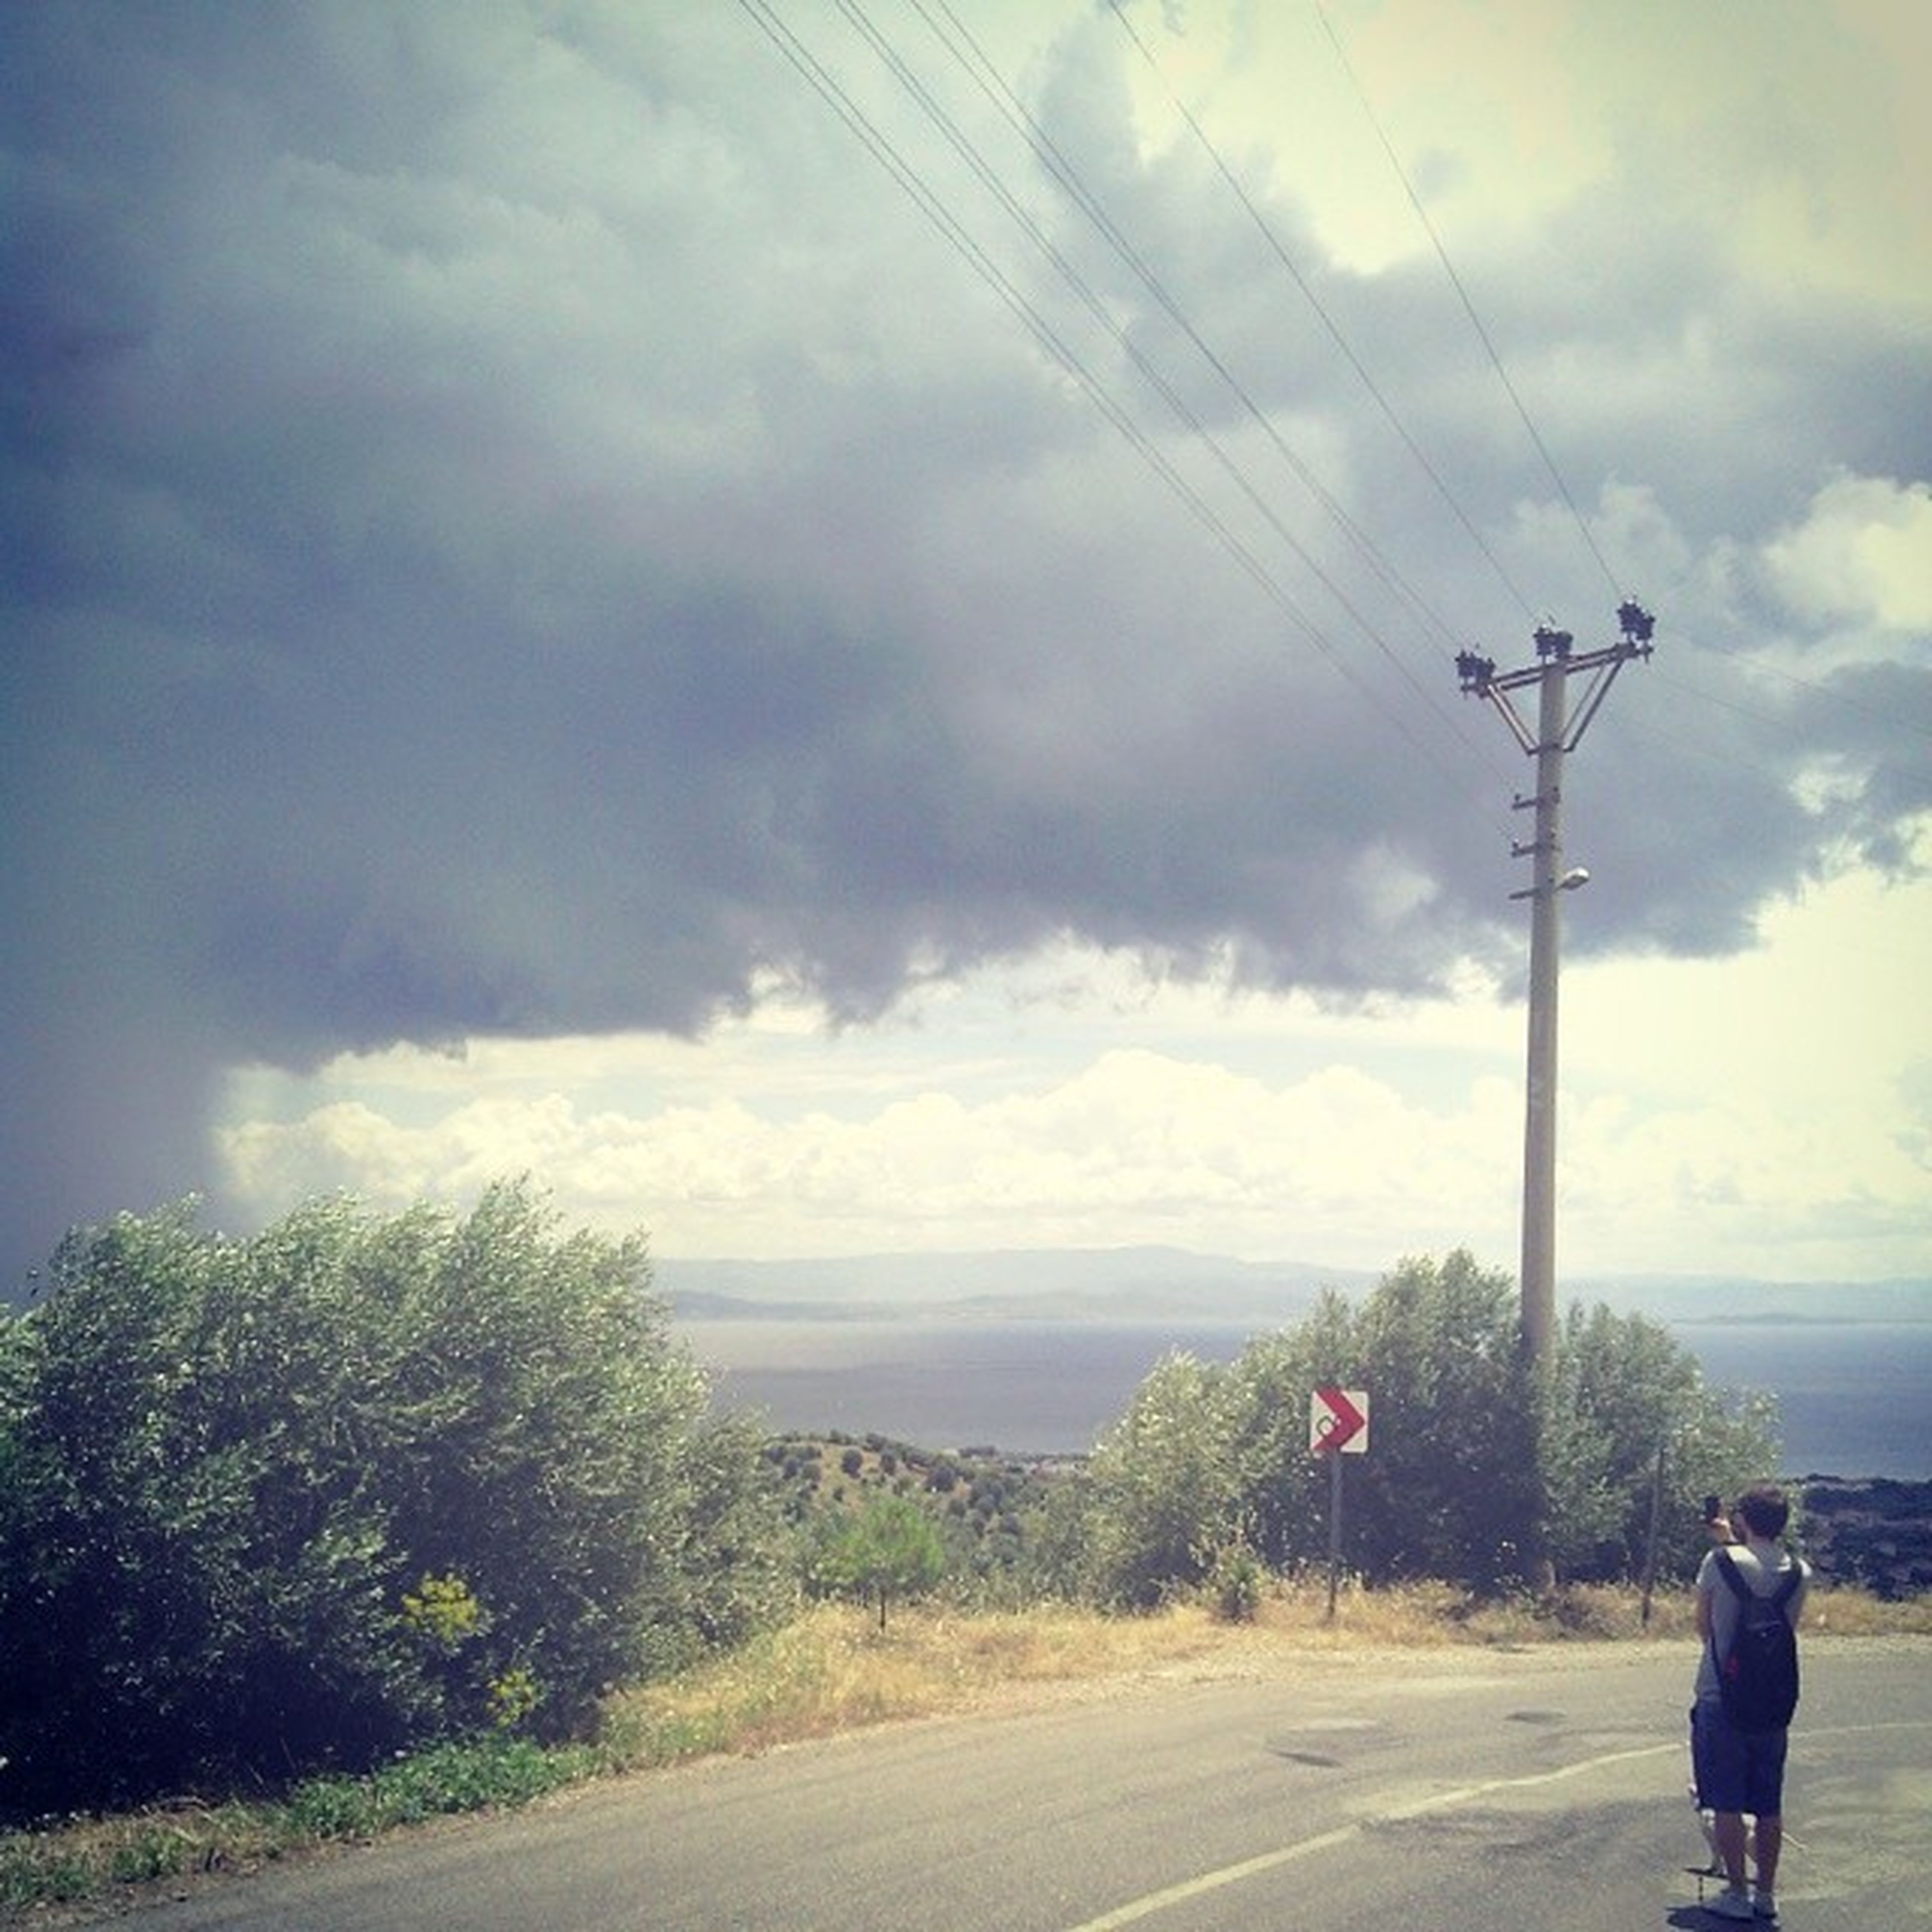 sky, cloud - sky, lifestyles, leisure activity, men, horizon over water, cloudy, sea, rear view, road, water, full length, cloud, transportation, walking, person, nature, tree